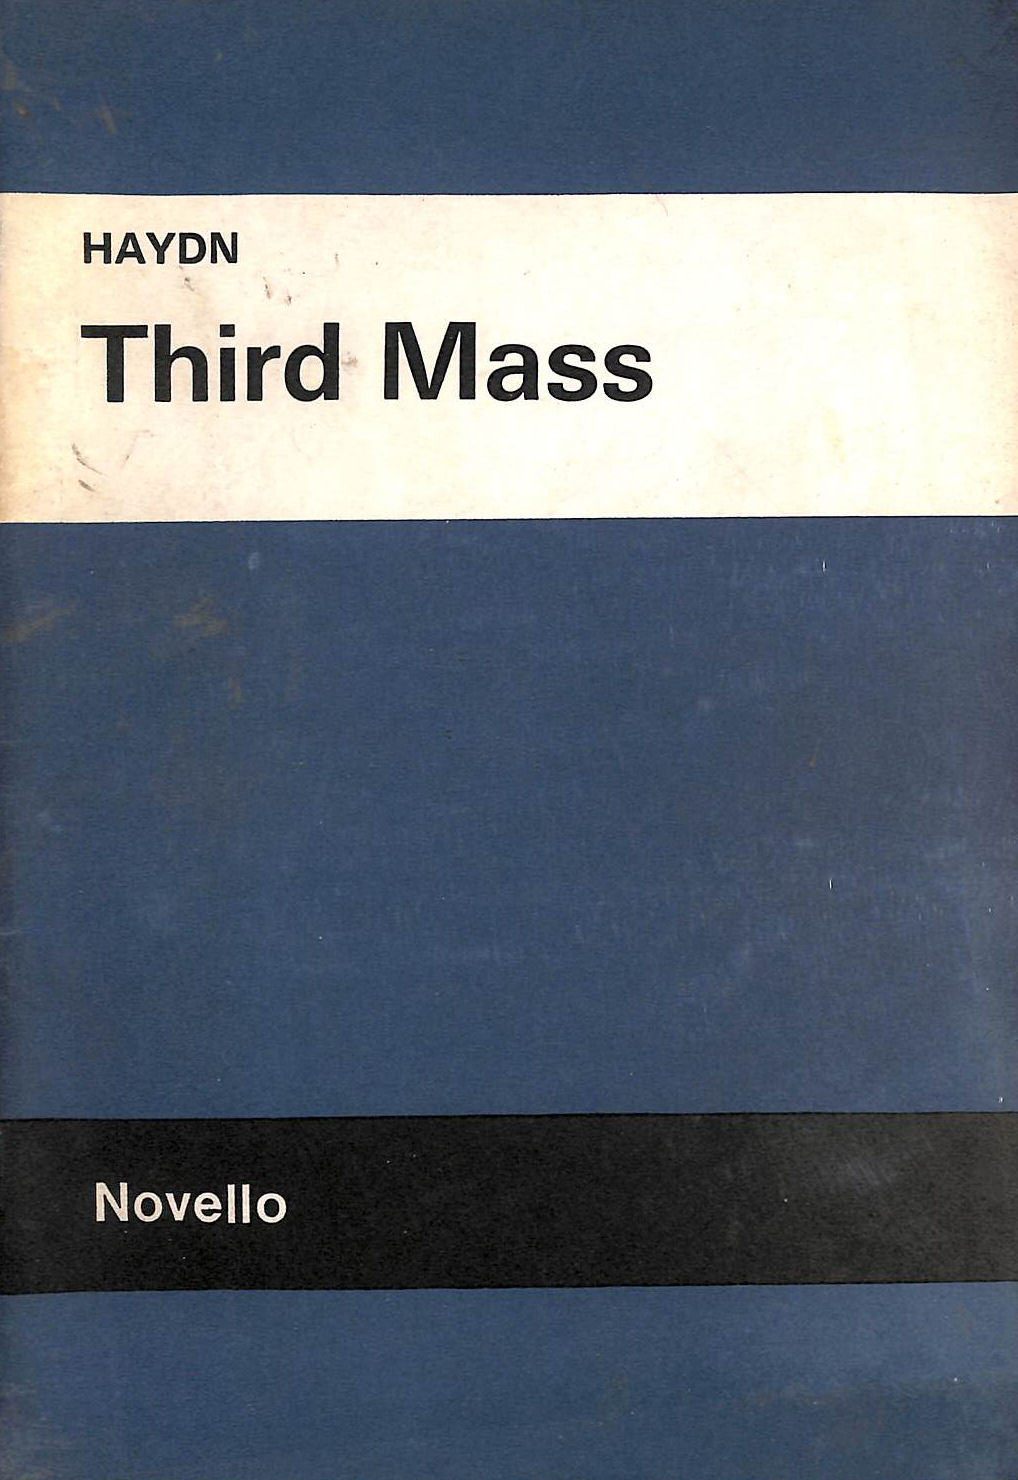 Image for Third Mass (The Imperial), in Vocal Score (Novello's Original Octavo Edition)